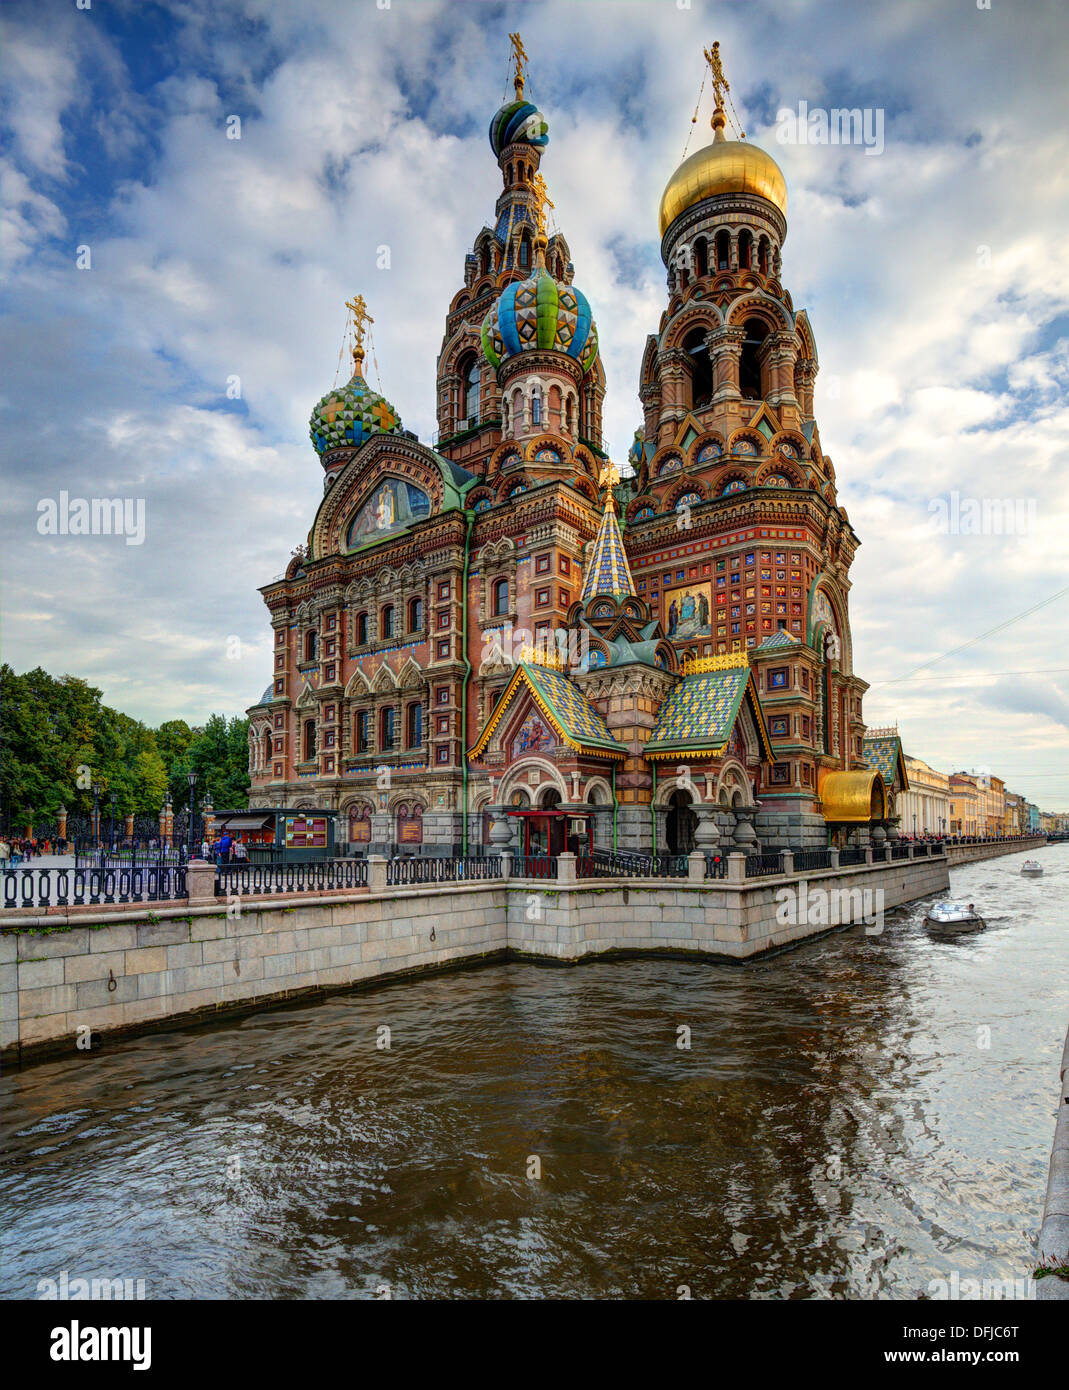 Church of the Savior on Blood in St. Petersburg, Russia. - Stock Image